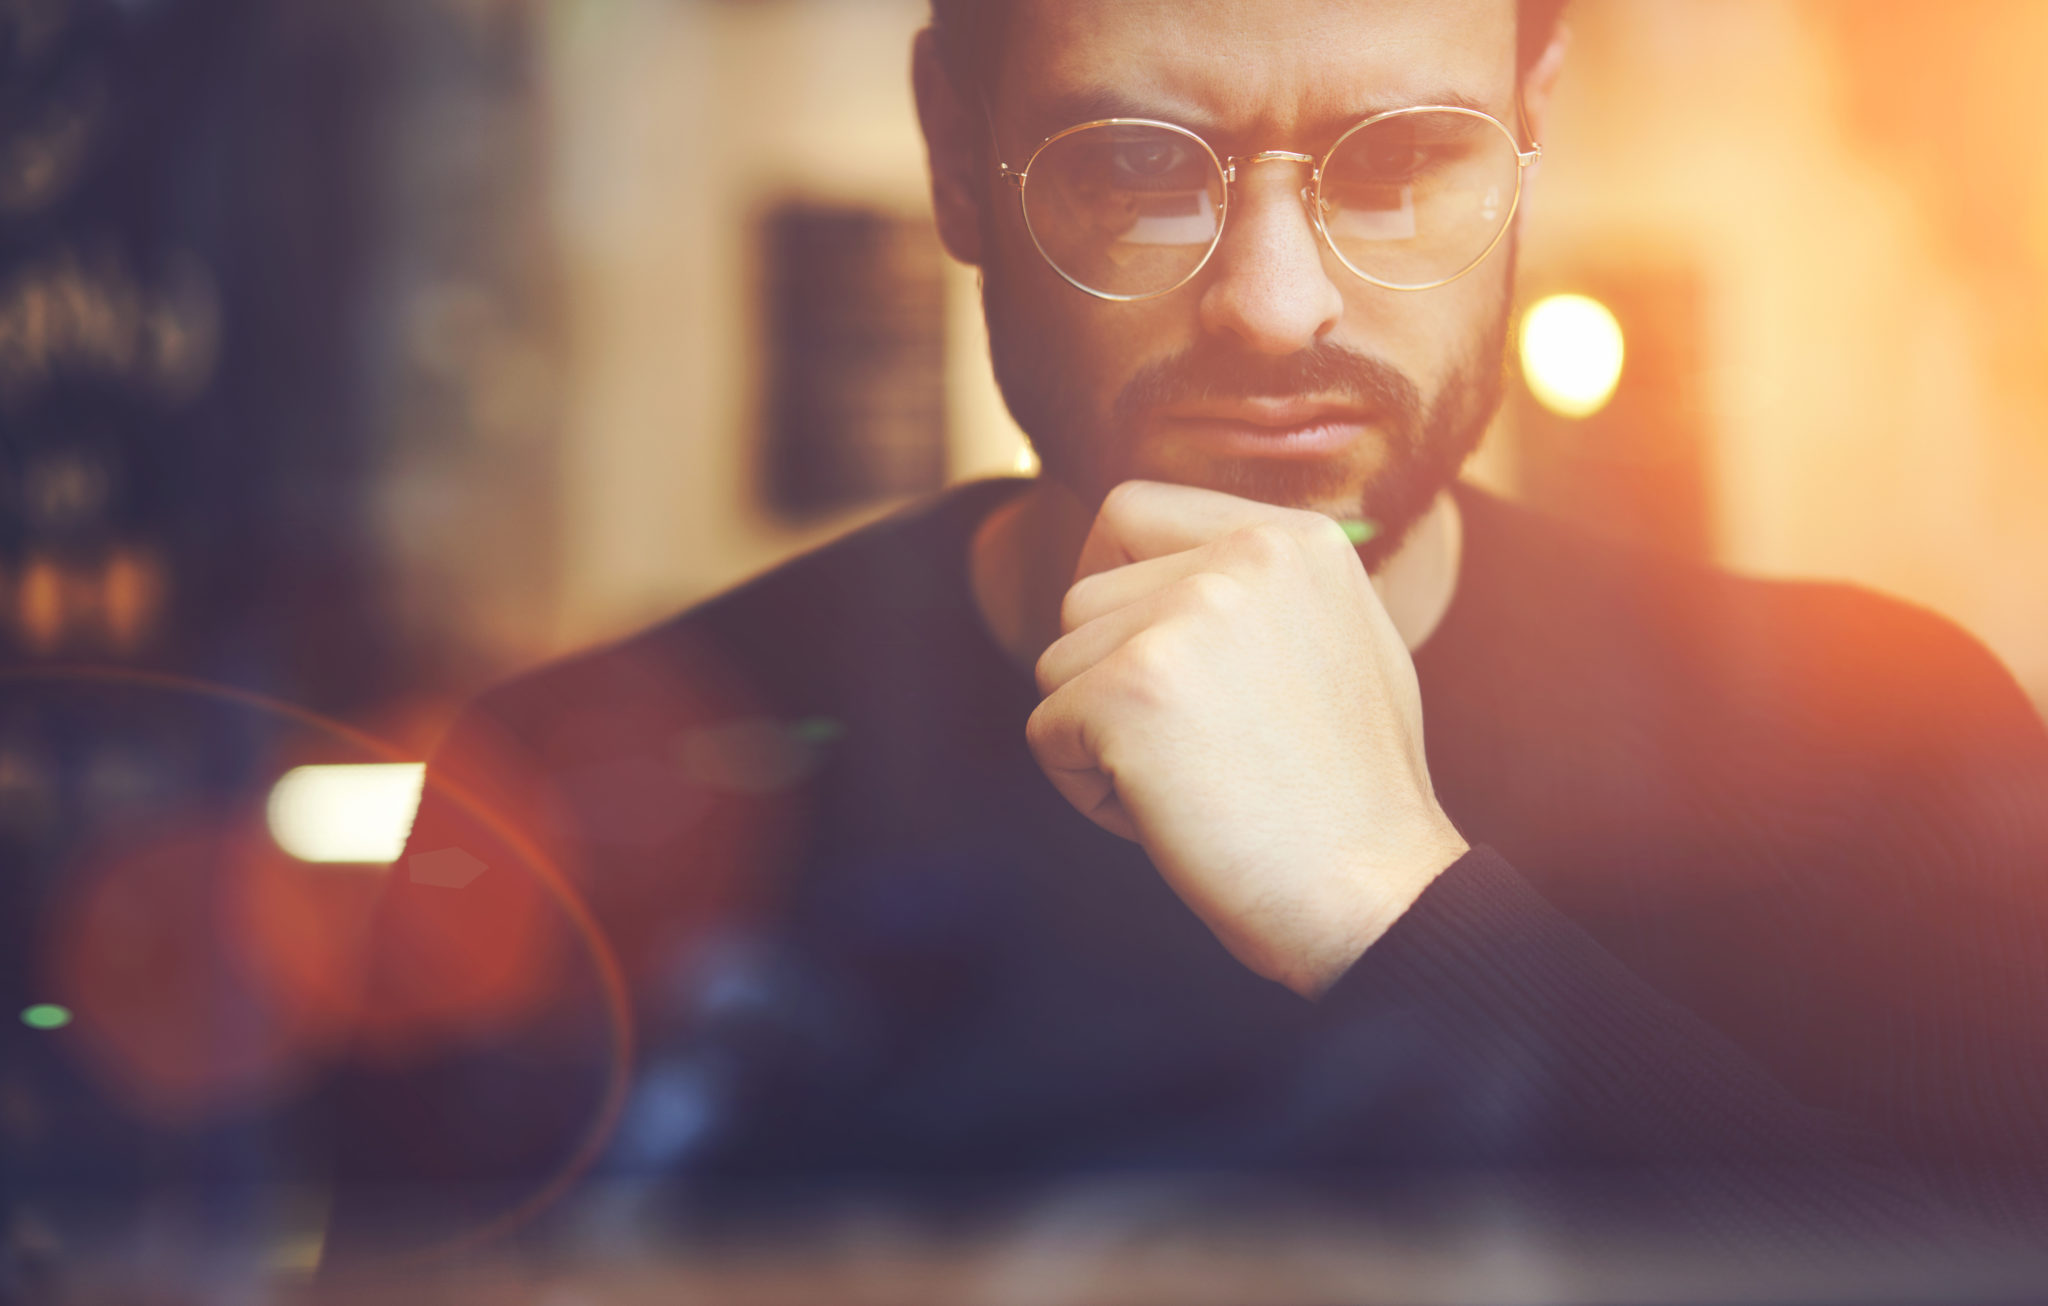 5 Hacks That Highly Successful Entrepreneurs Use to Stay Laser-Focused